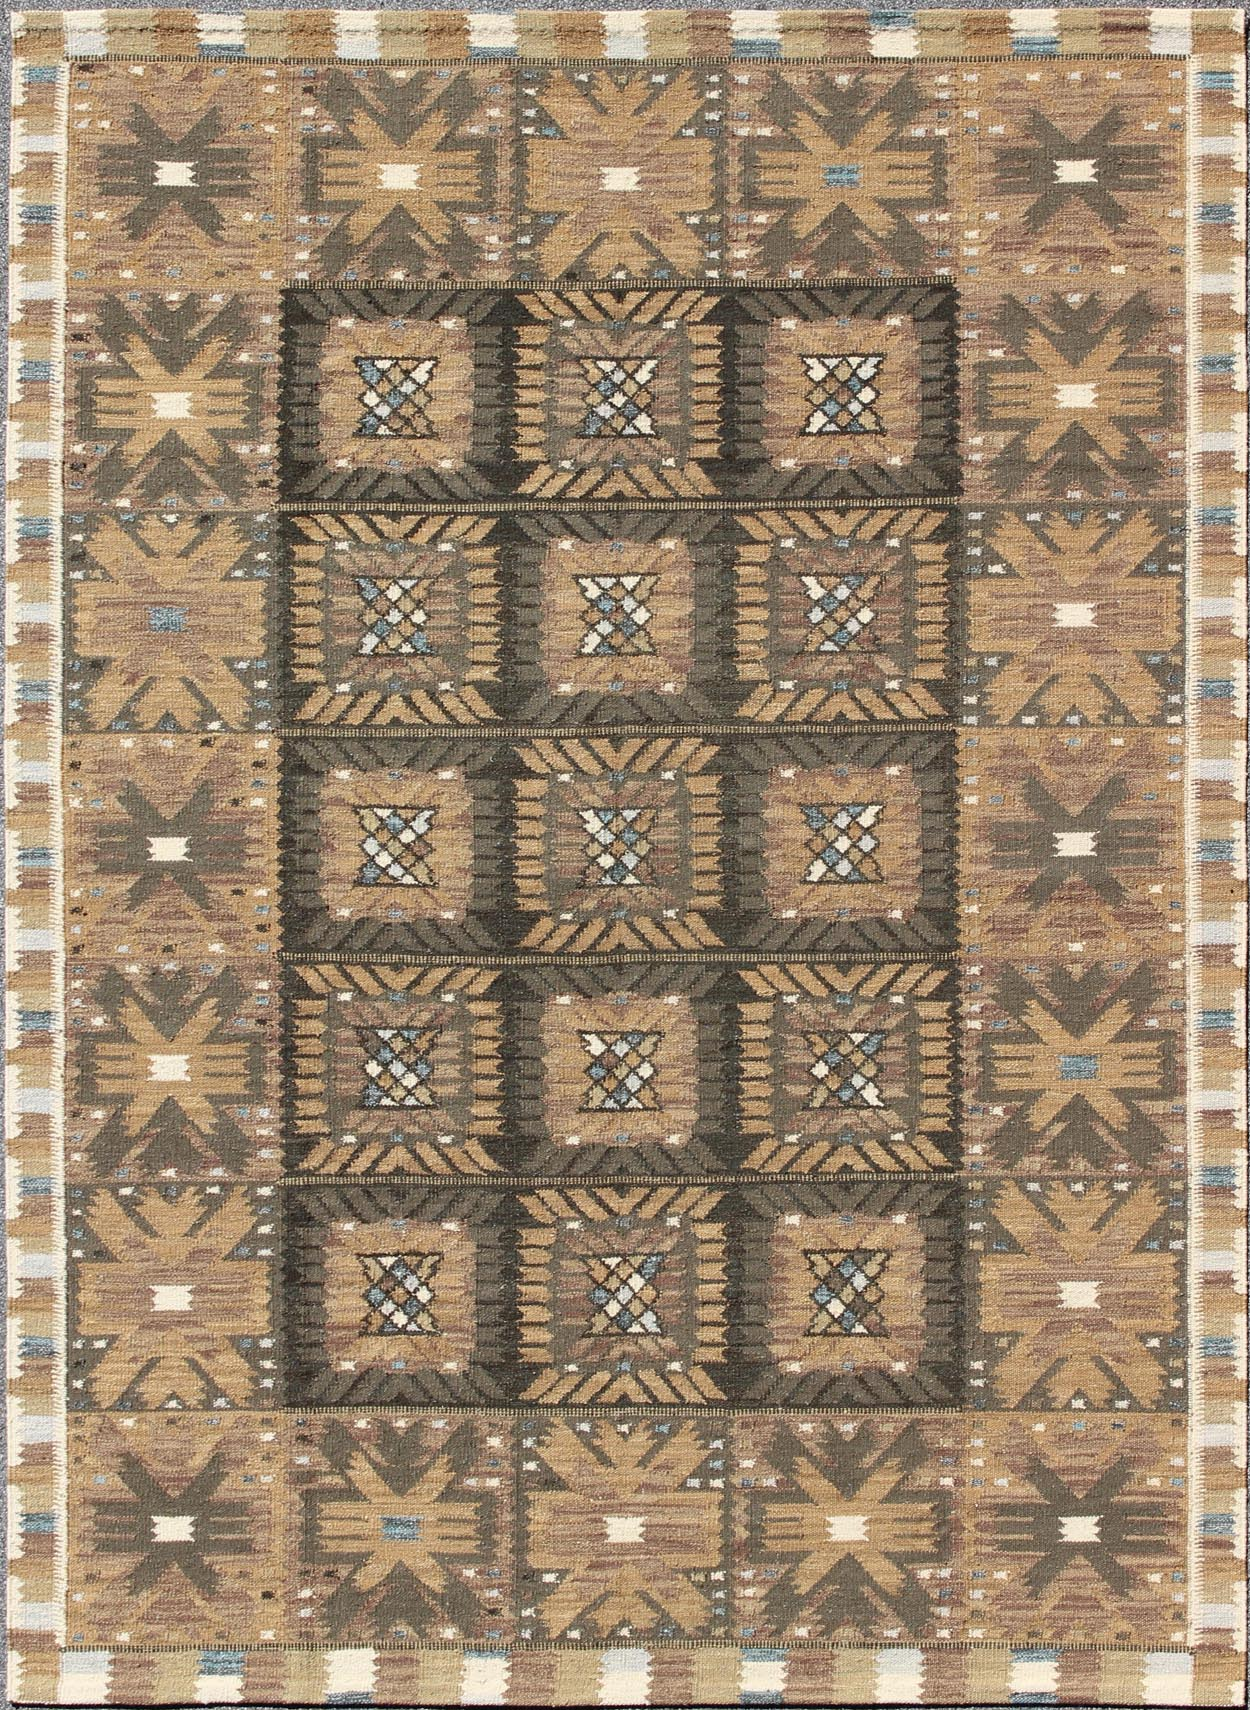 "Scandinavian Flat Weave Rug - RJK-20129-SHB-001-07 | Scandinavian Flat Weave - 8'4"" x 9'0"" 